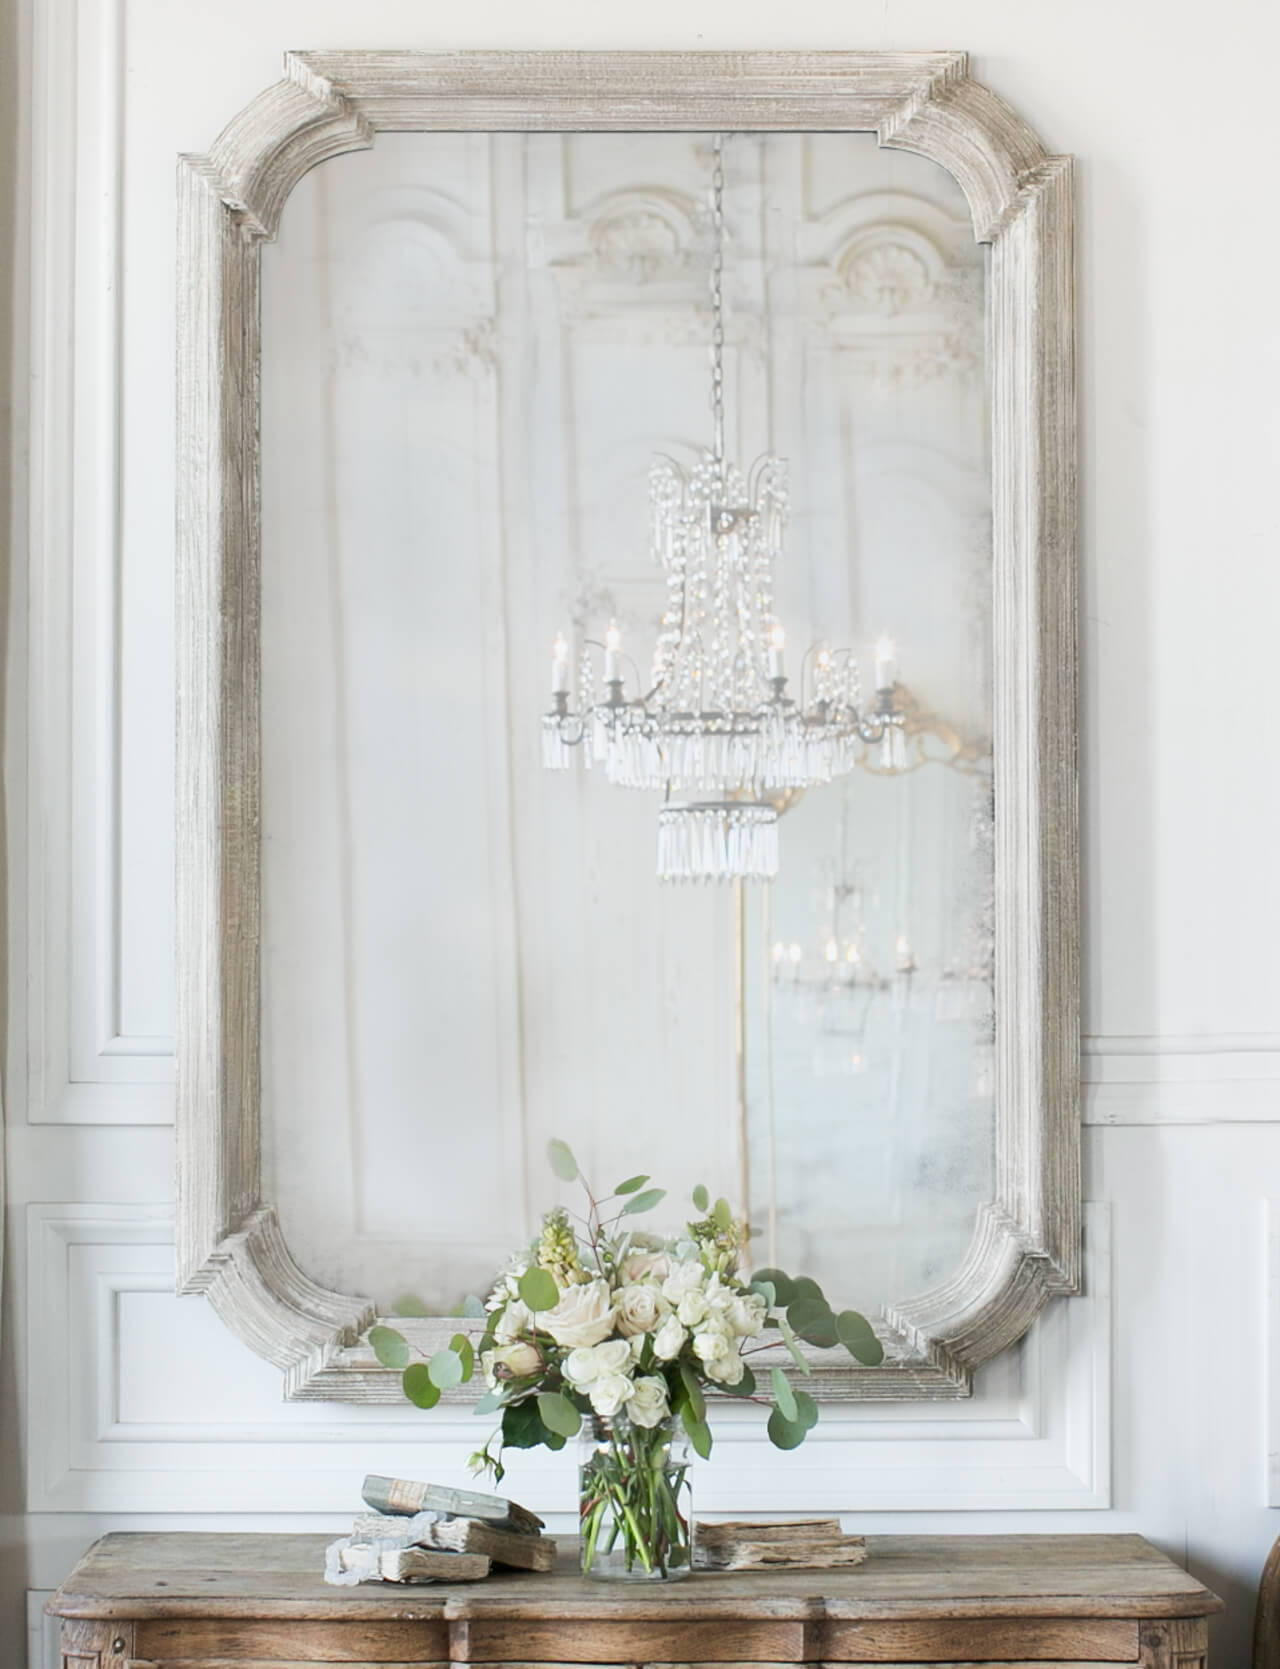 Eloquence® Vienna Mirror in Frosted Wood Finish